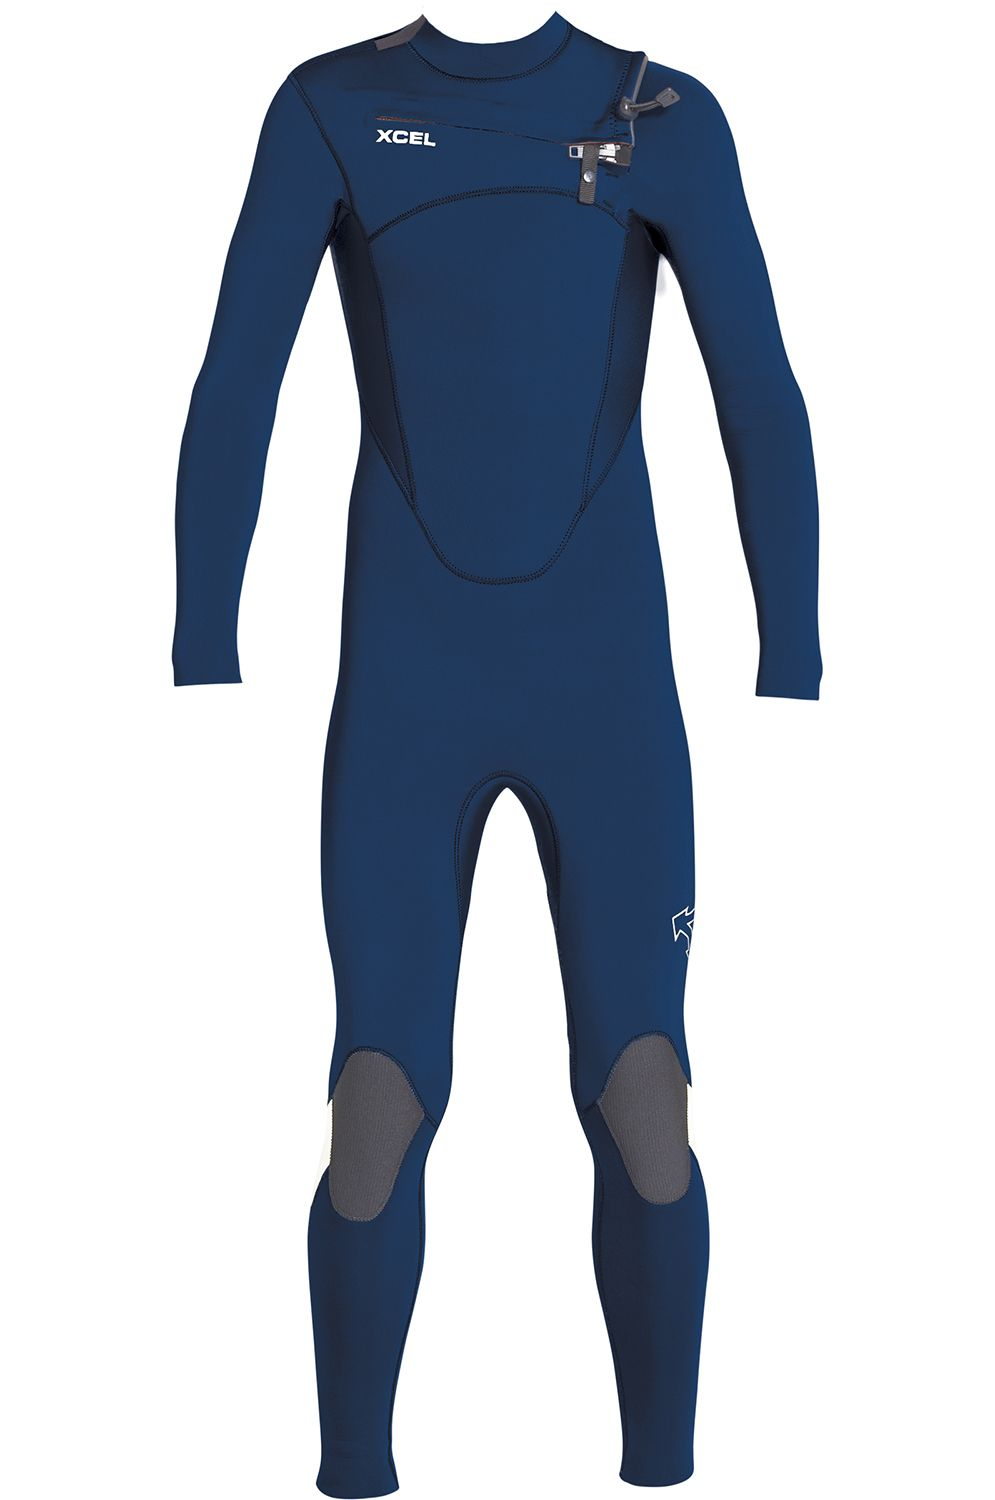 Xcel Wetsuit 3/2MM COMP X2 THERMO LITE FULLSUIT Ink Blue/White 3x2mm